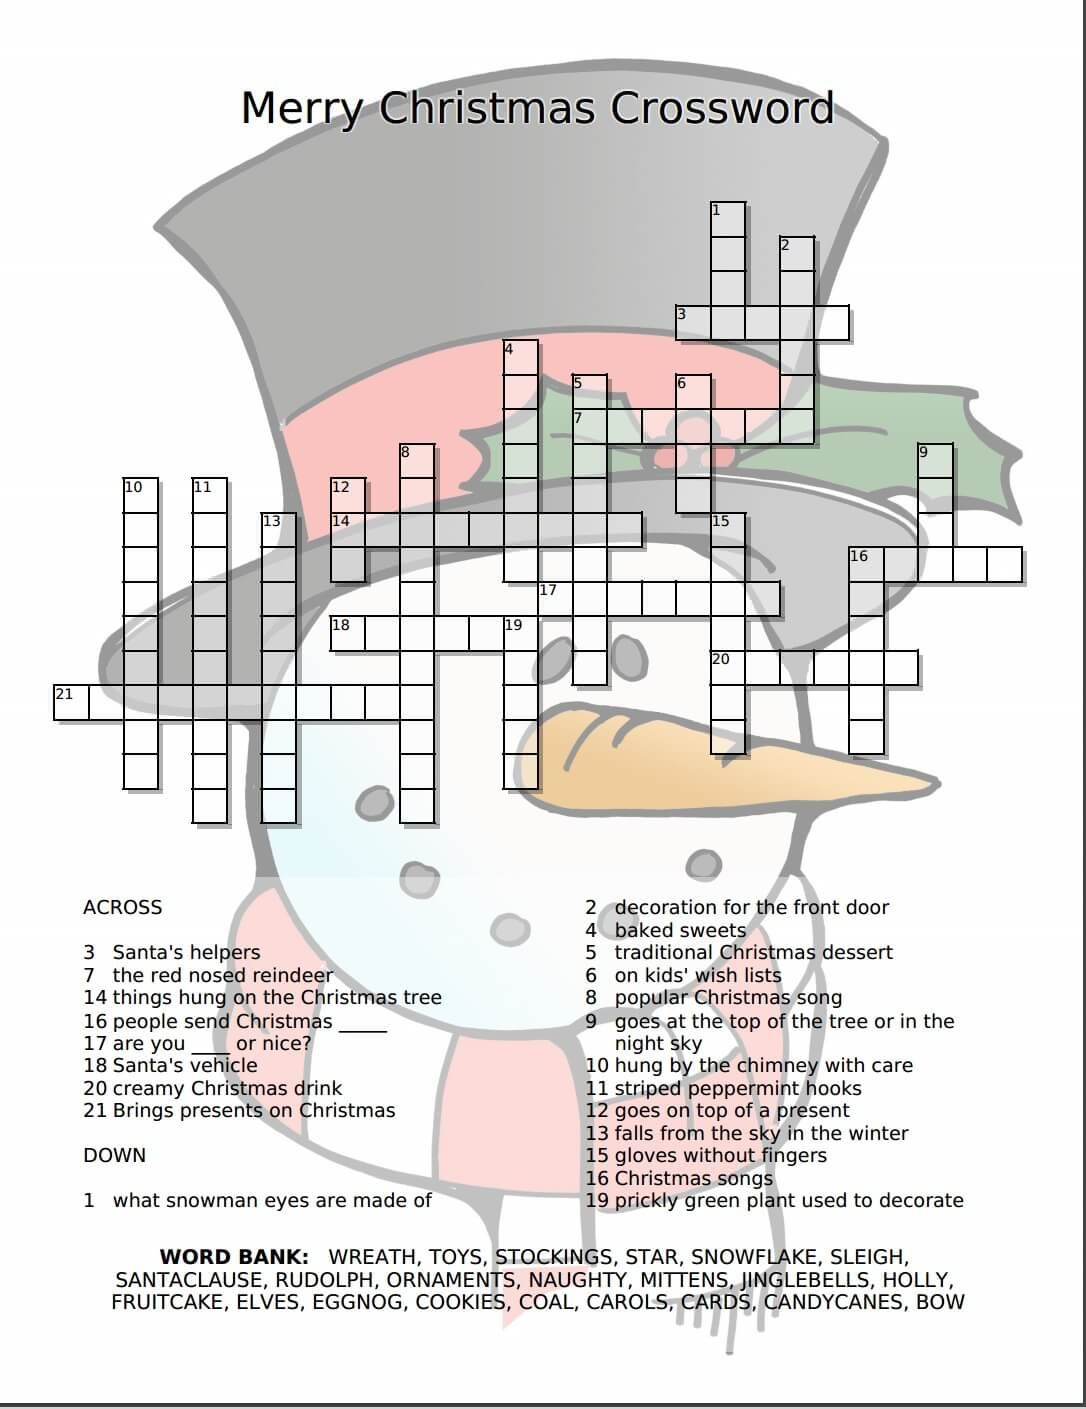 Merry Christmas Crossword Free Printable | Freebies Galore - Free Printable Xmas Crossword